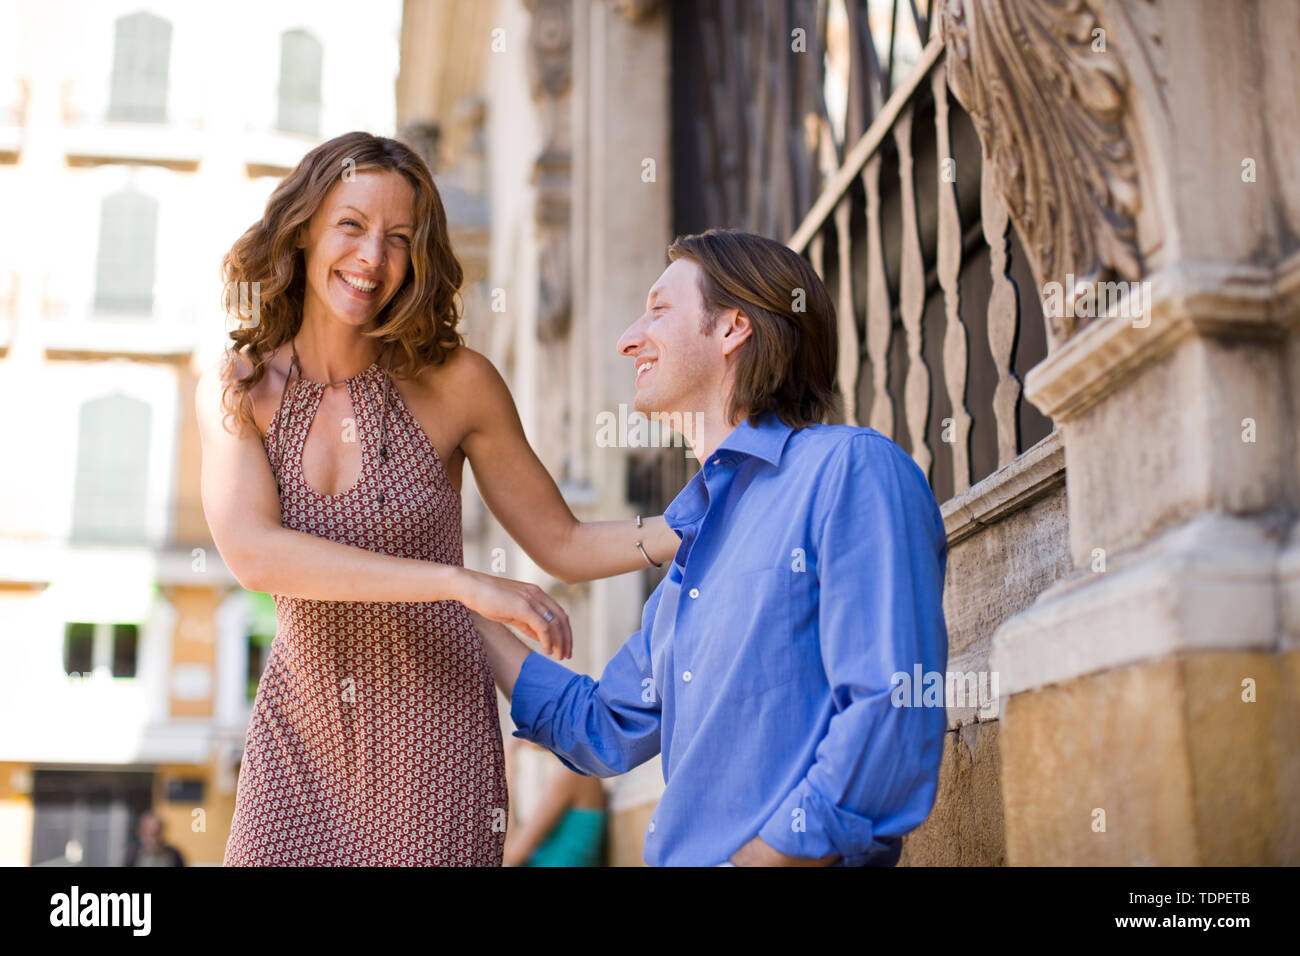 Mid-adult couple standing touching on a street. - Stock Image